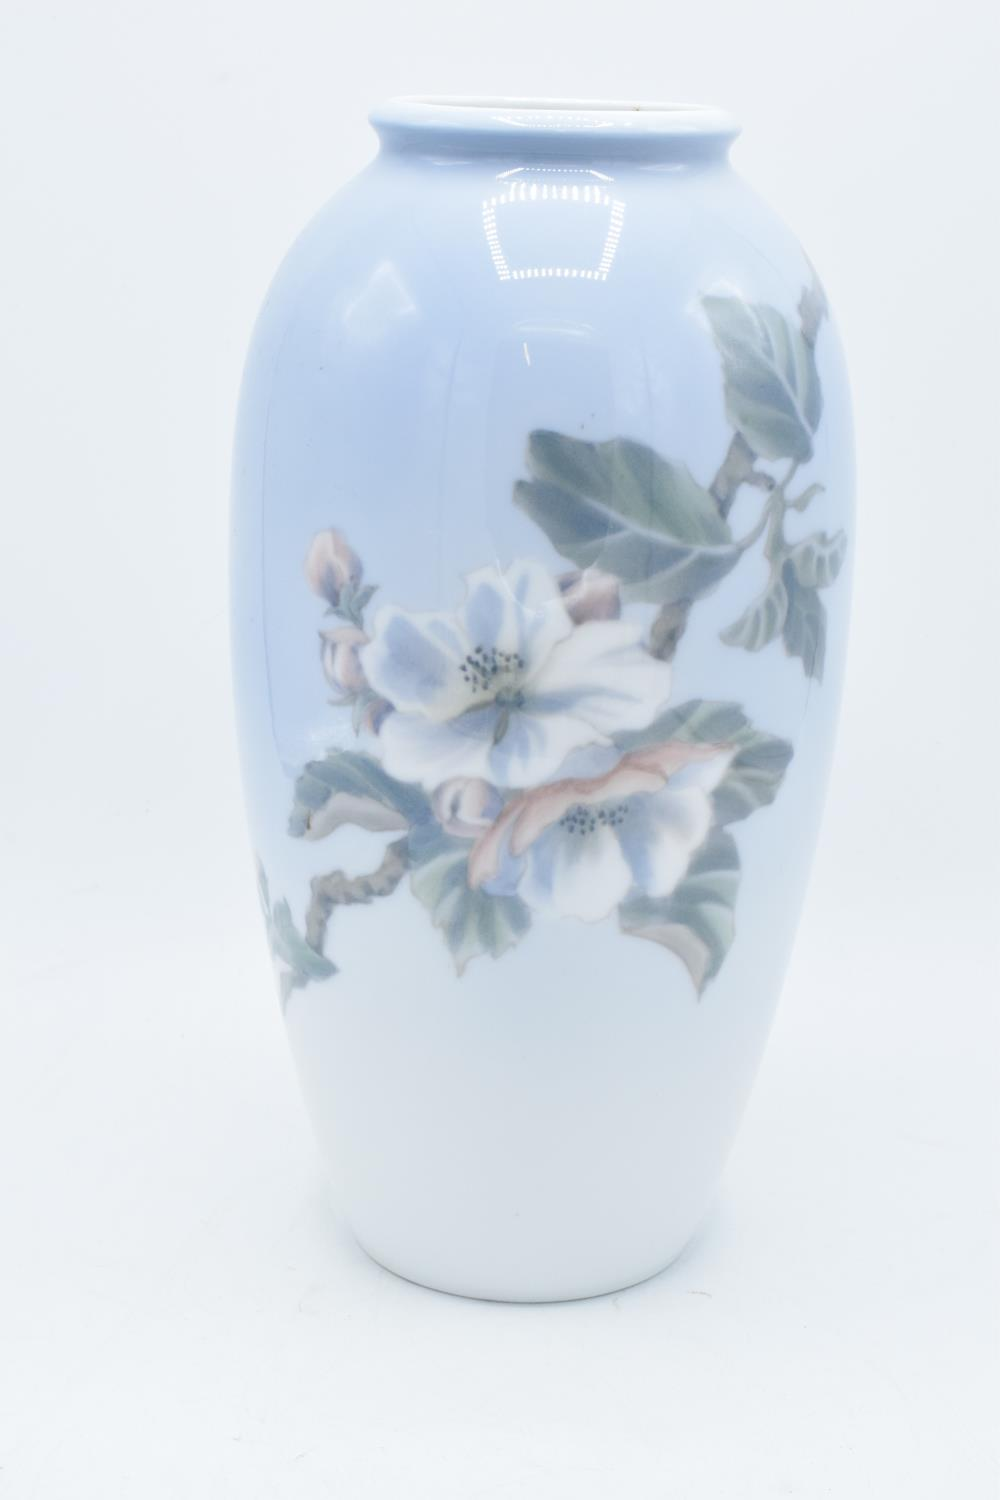 Royal Copenhagen vase with Apple Blossom design. 2629/2129. In good condition with no obvious damage